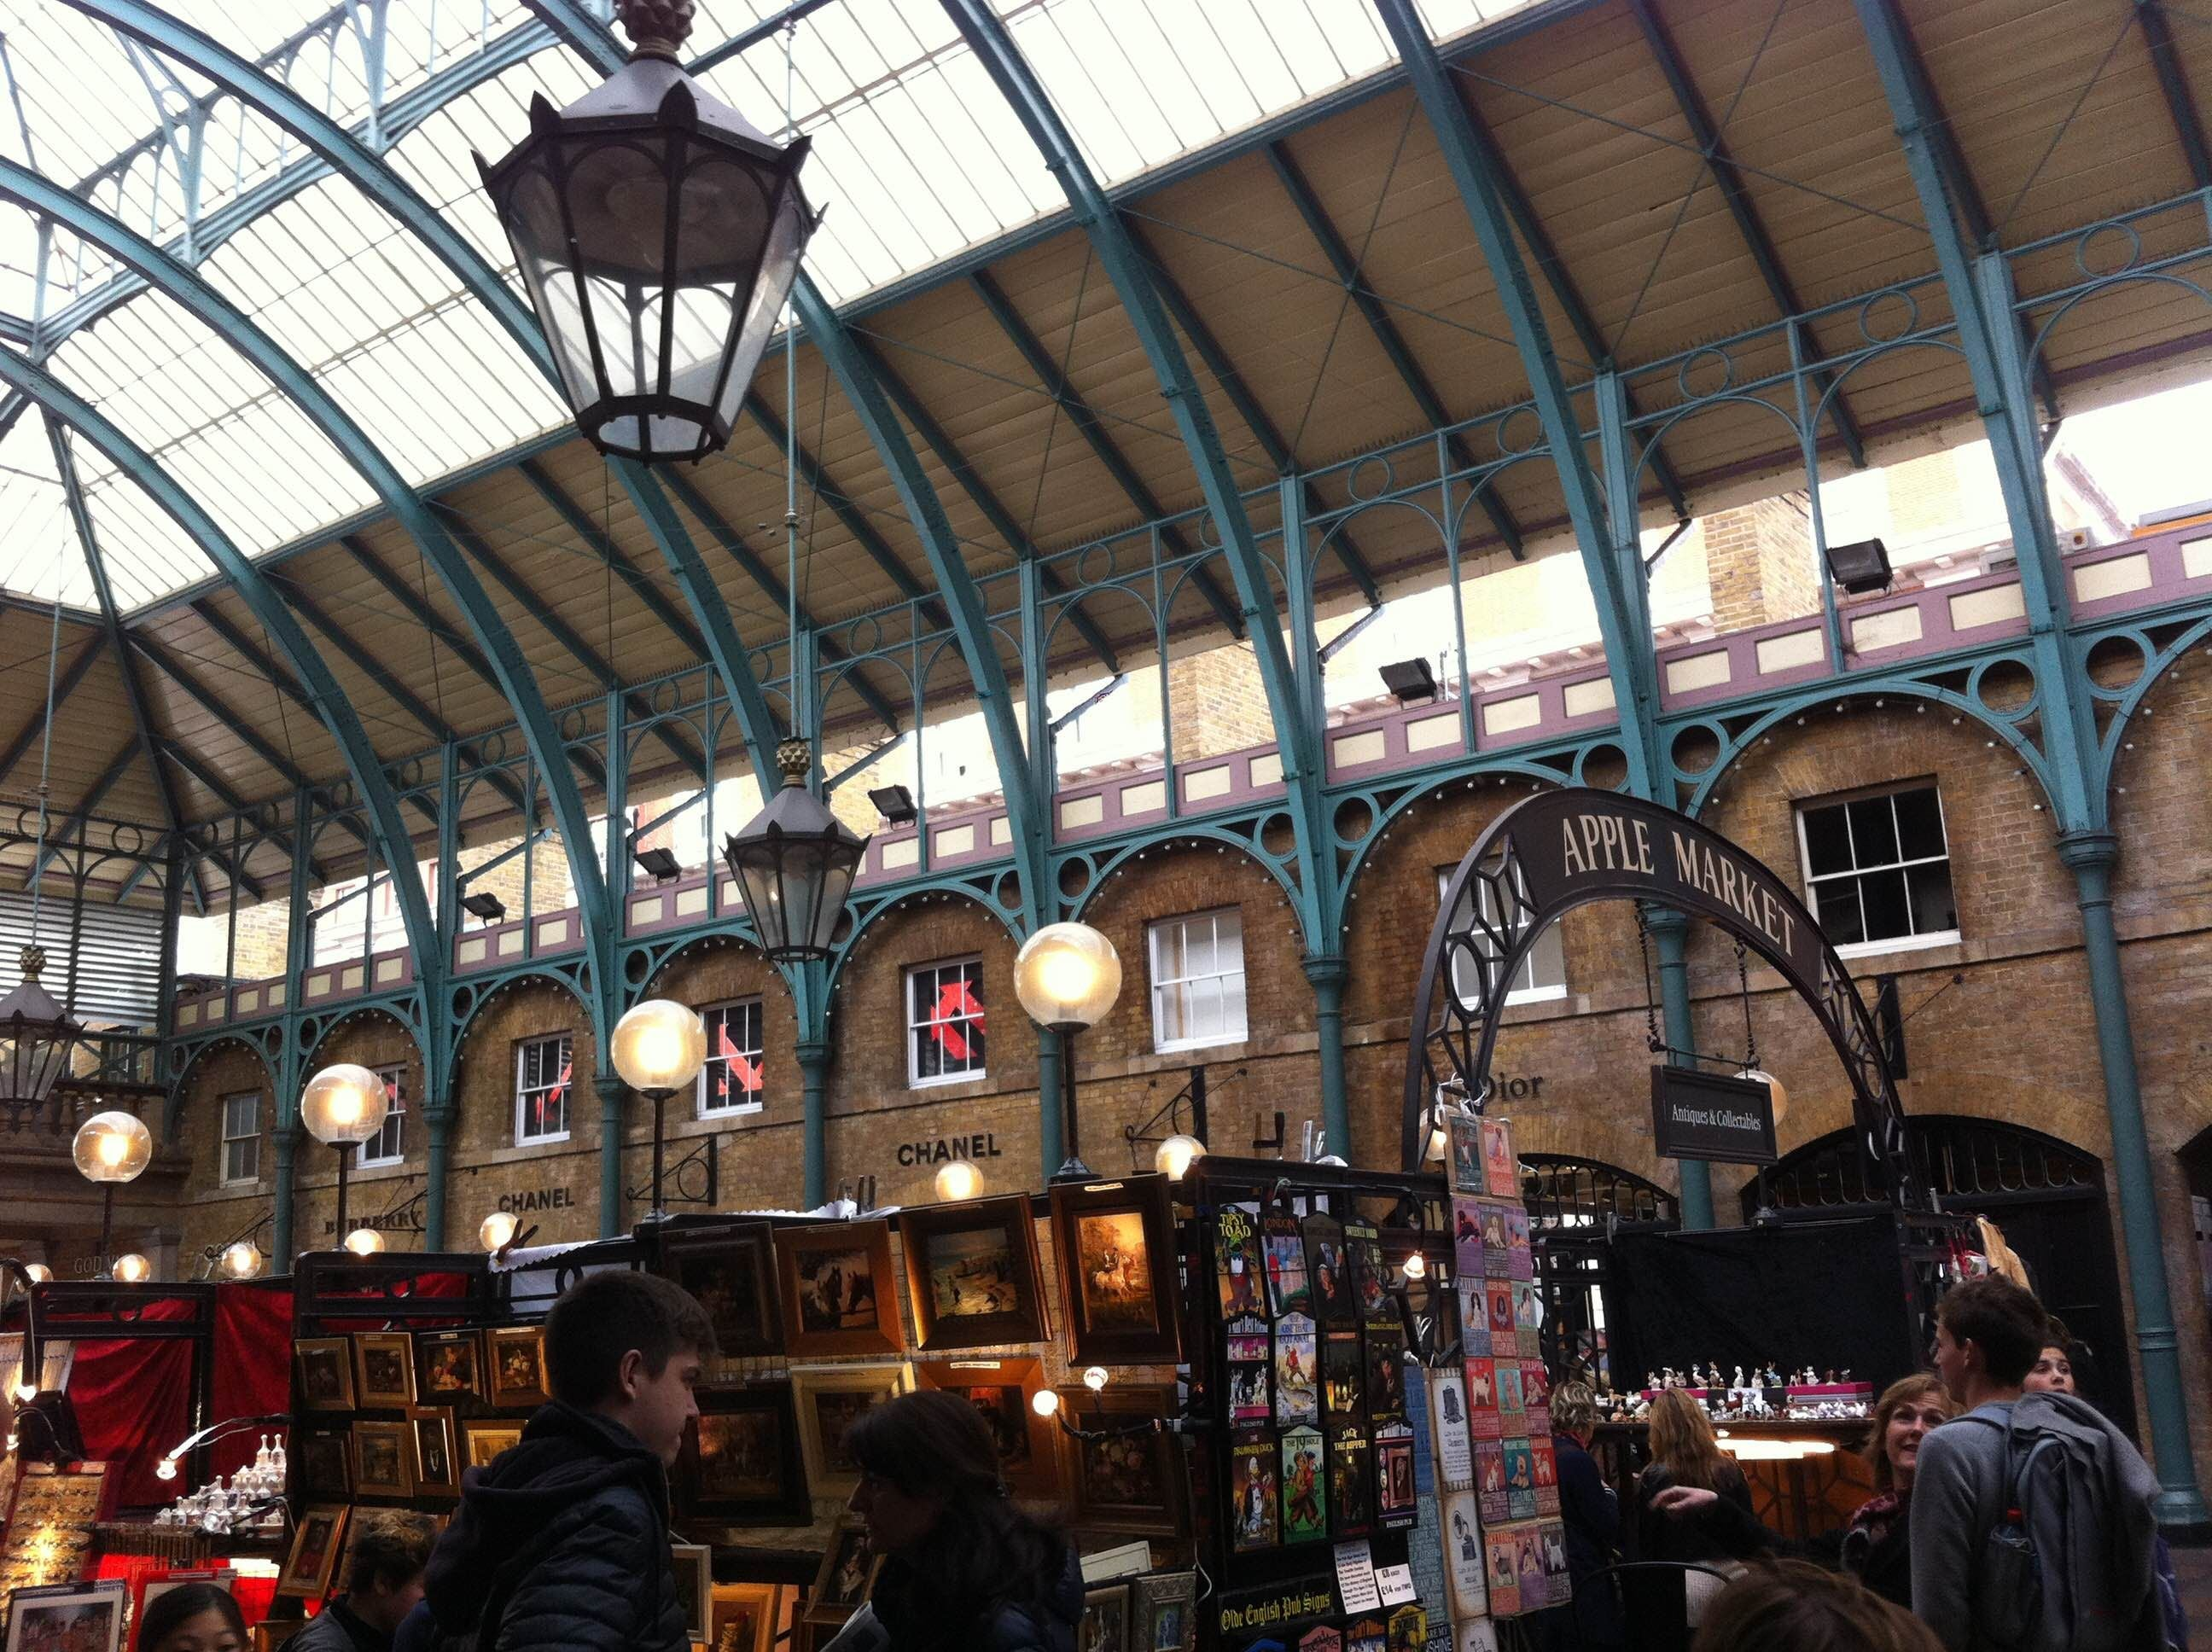 Mercado en Covent Garden